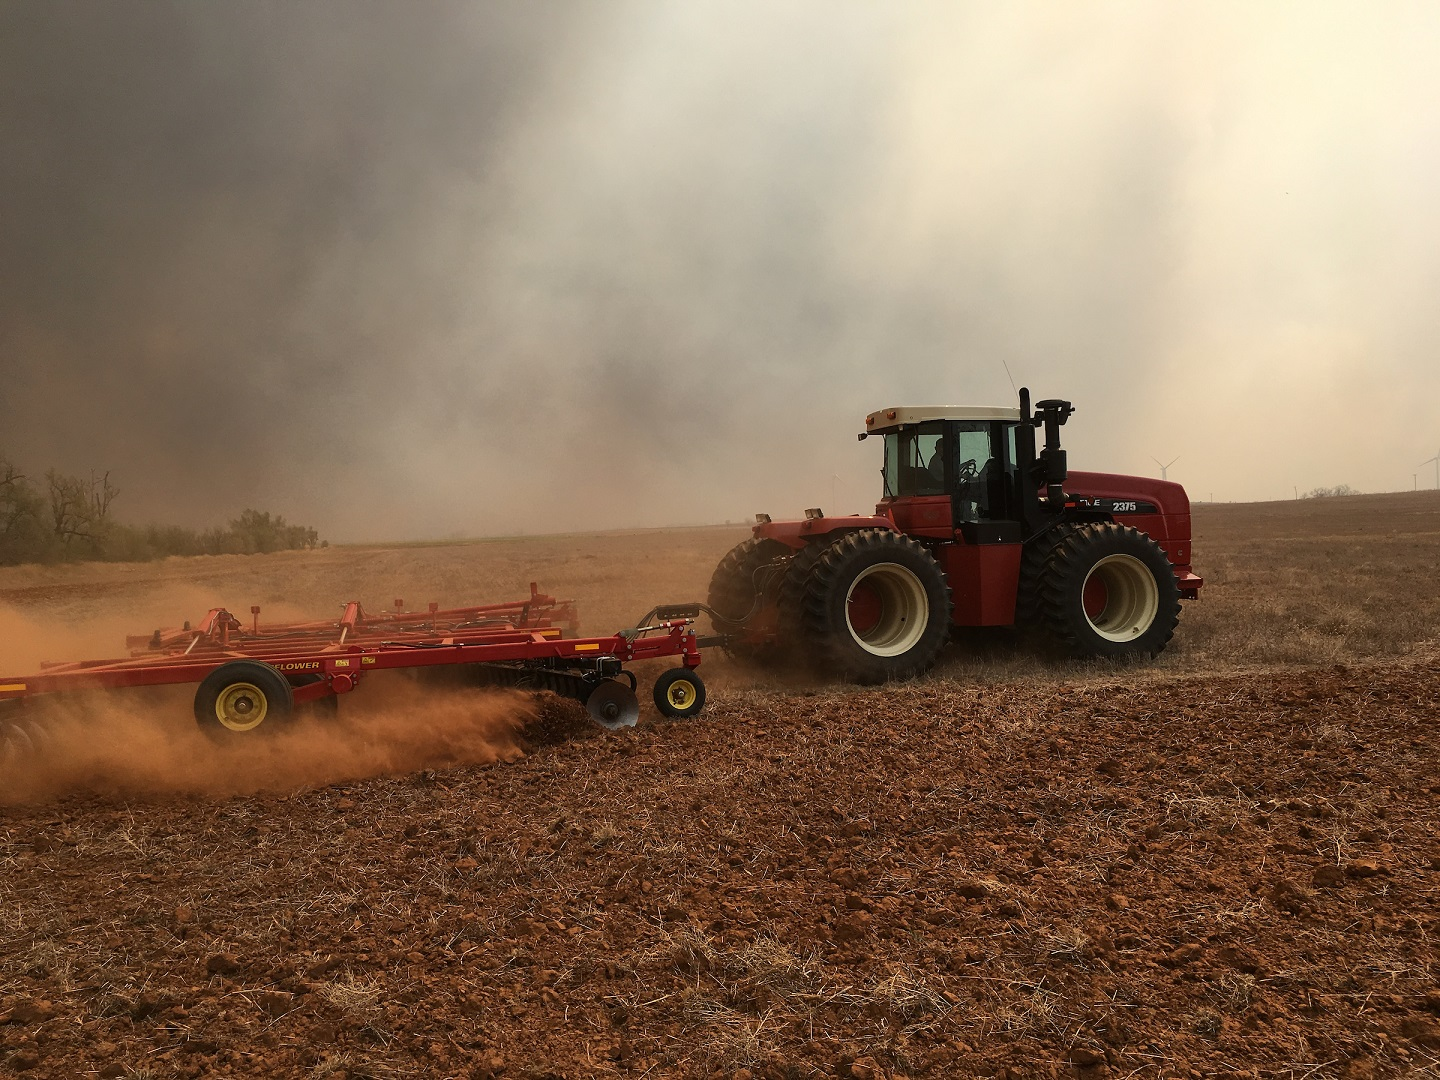 New phone numbers added to contact OSU Cooperative Extension recovery assistance after wildfires